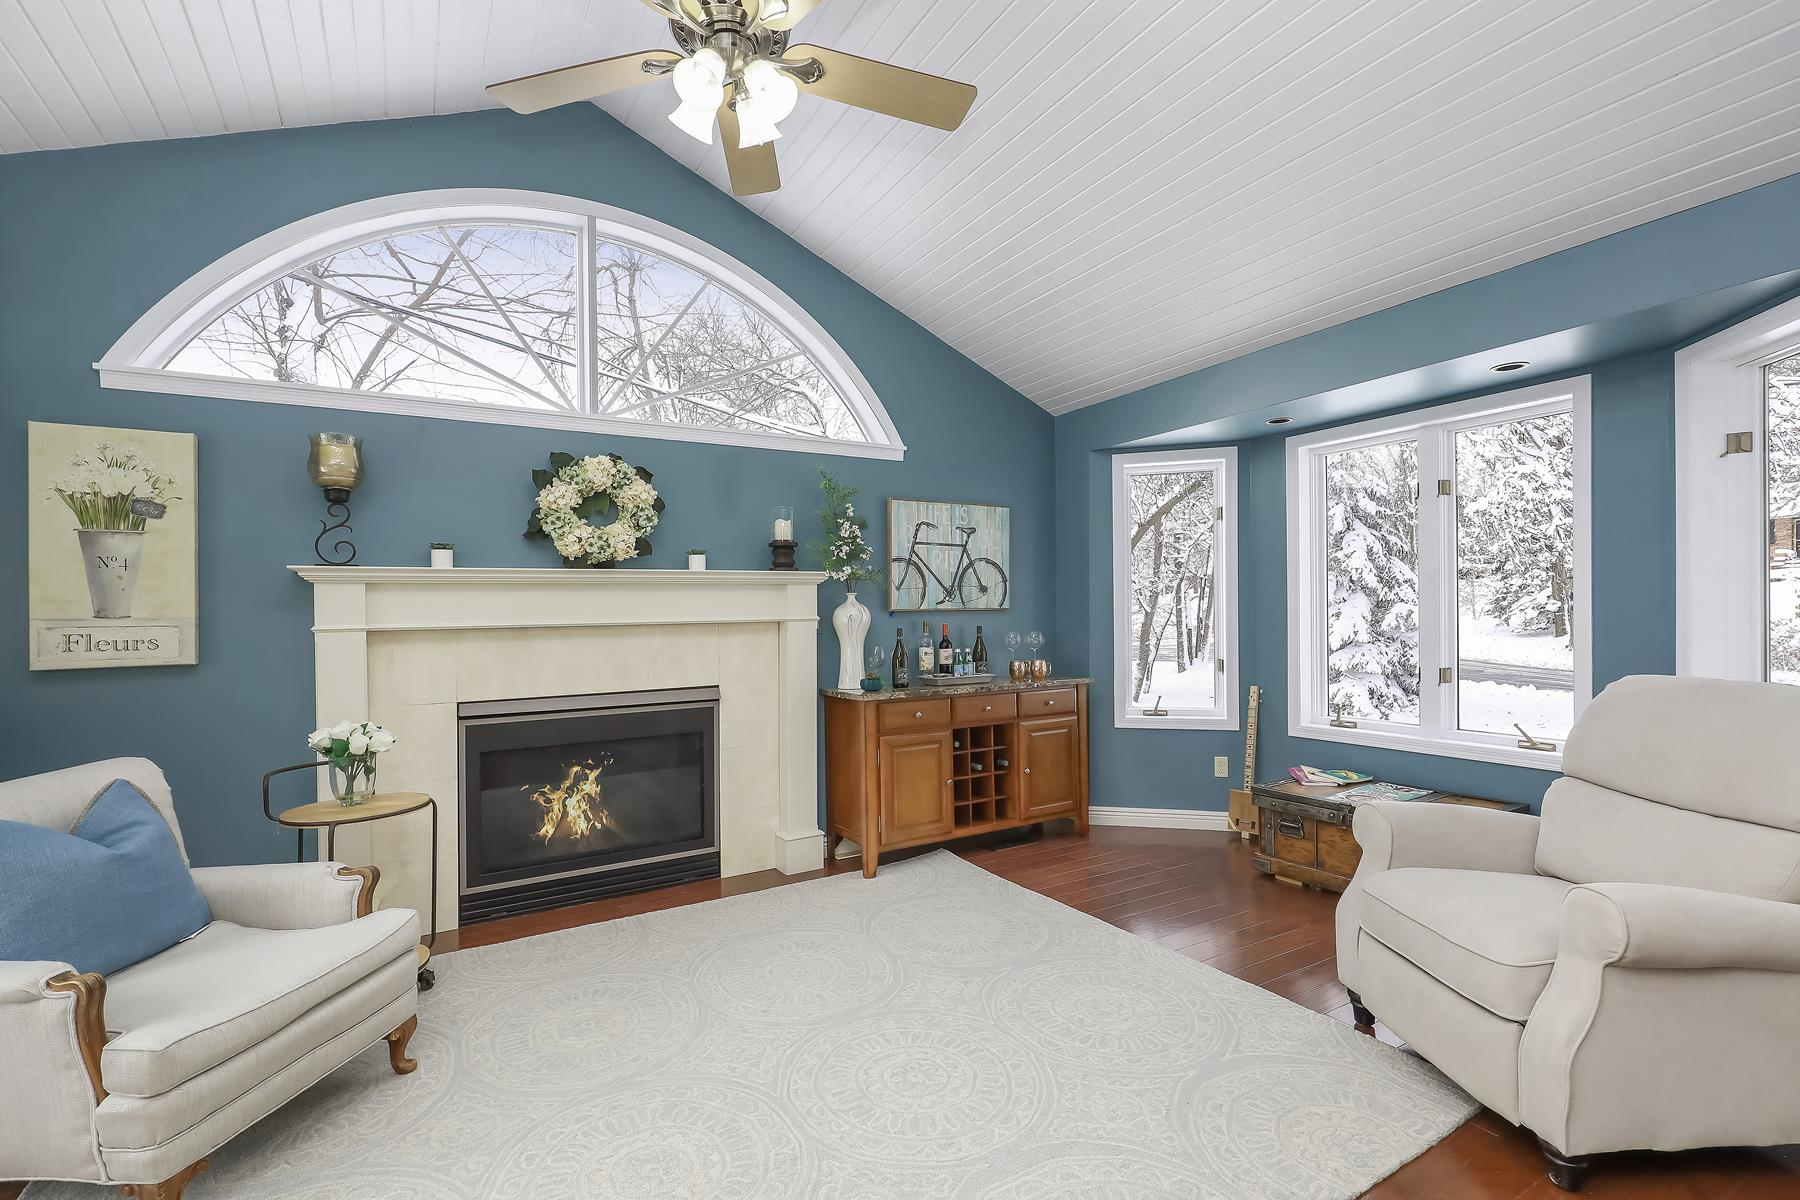 Single Family Homes for Sale at Sought-after Lake Forest Neighborhood Three Level Split on Corner Lot 2357 Parkwoods Road St. Louis Park, Minnesota 55416 United States